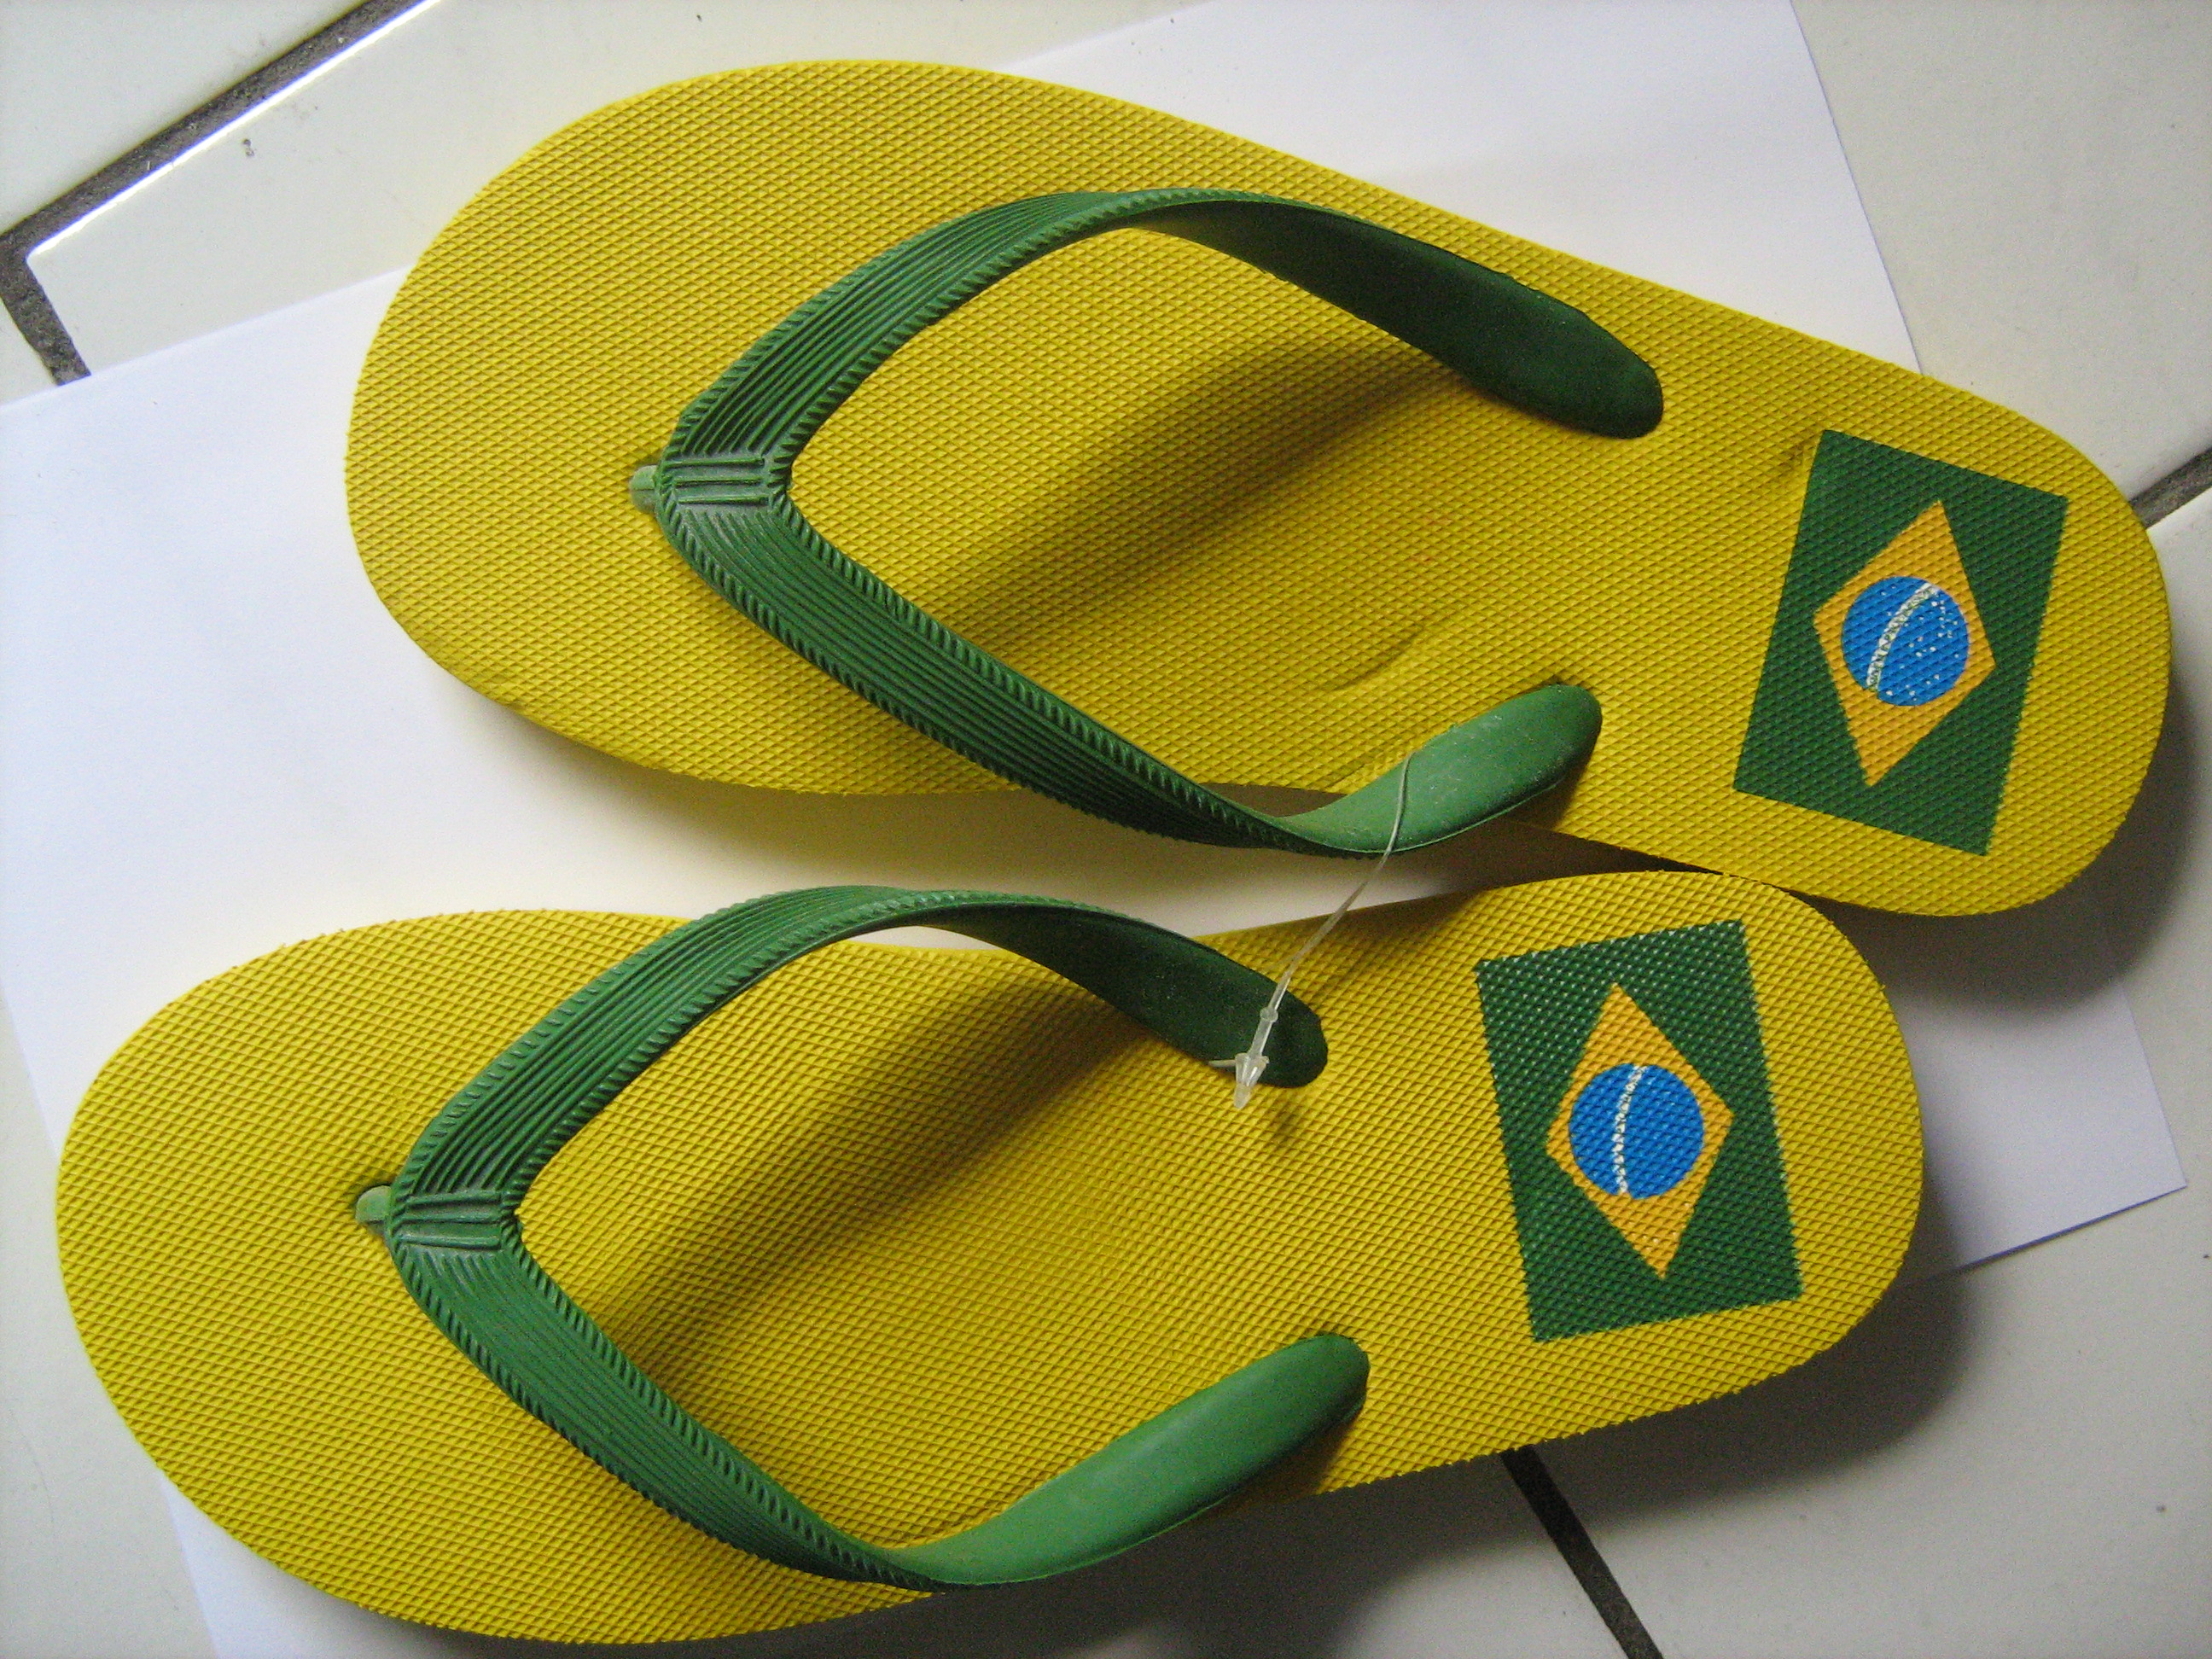 sandal from Brazil with brazilian flag